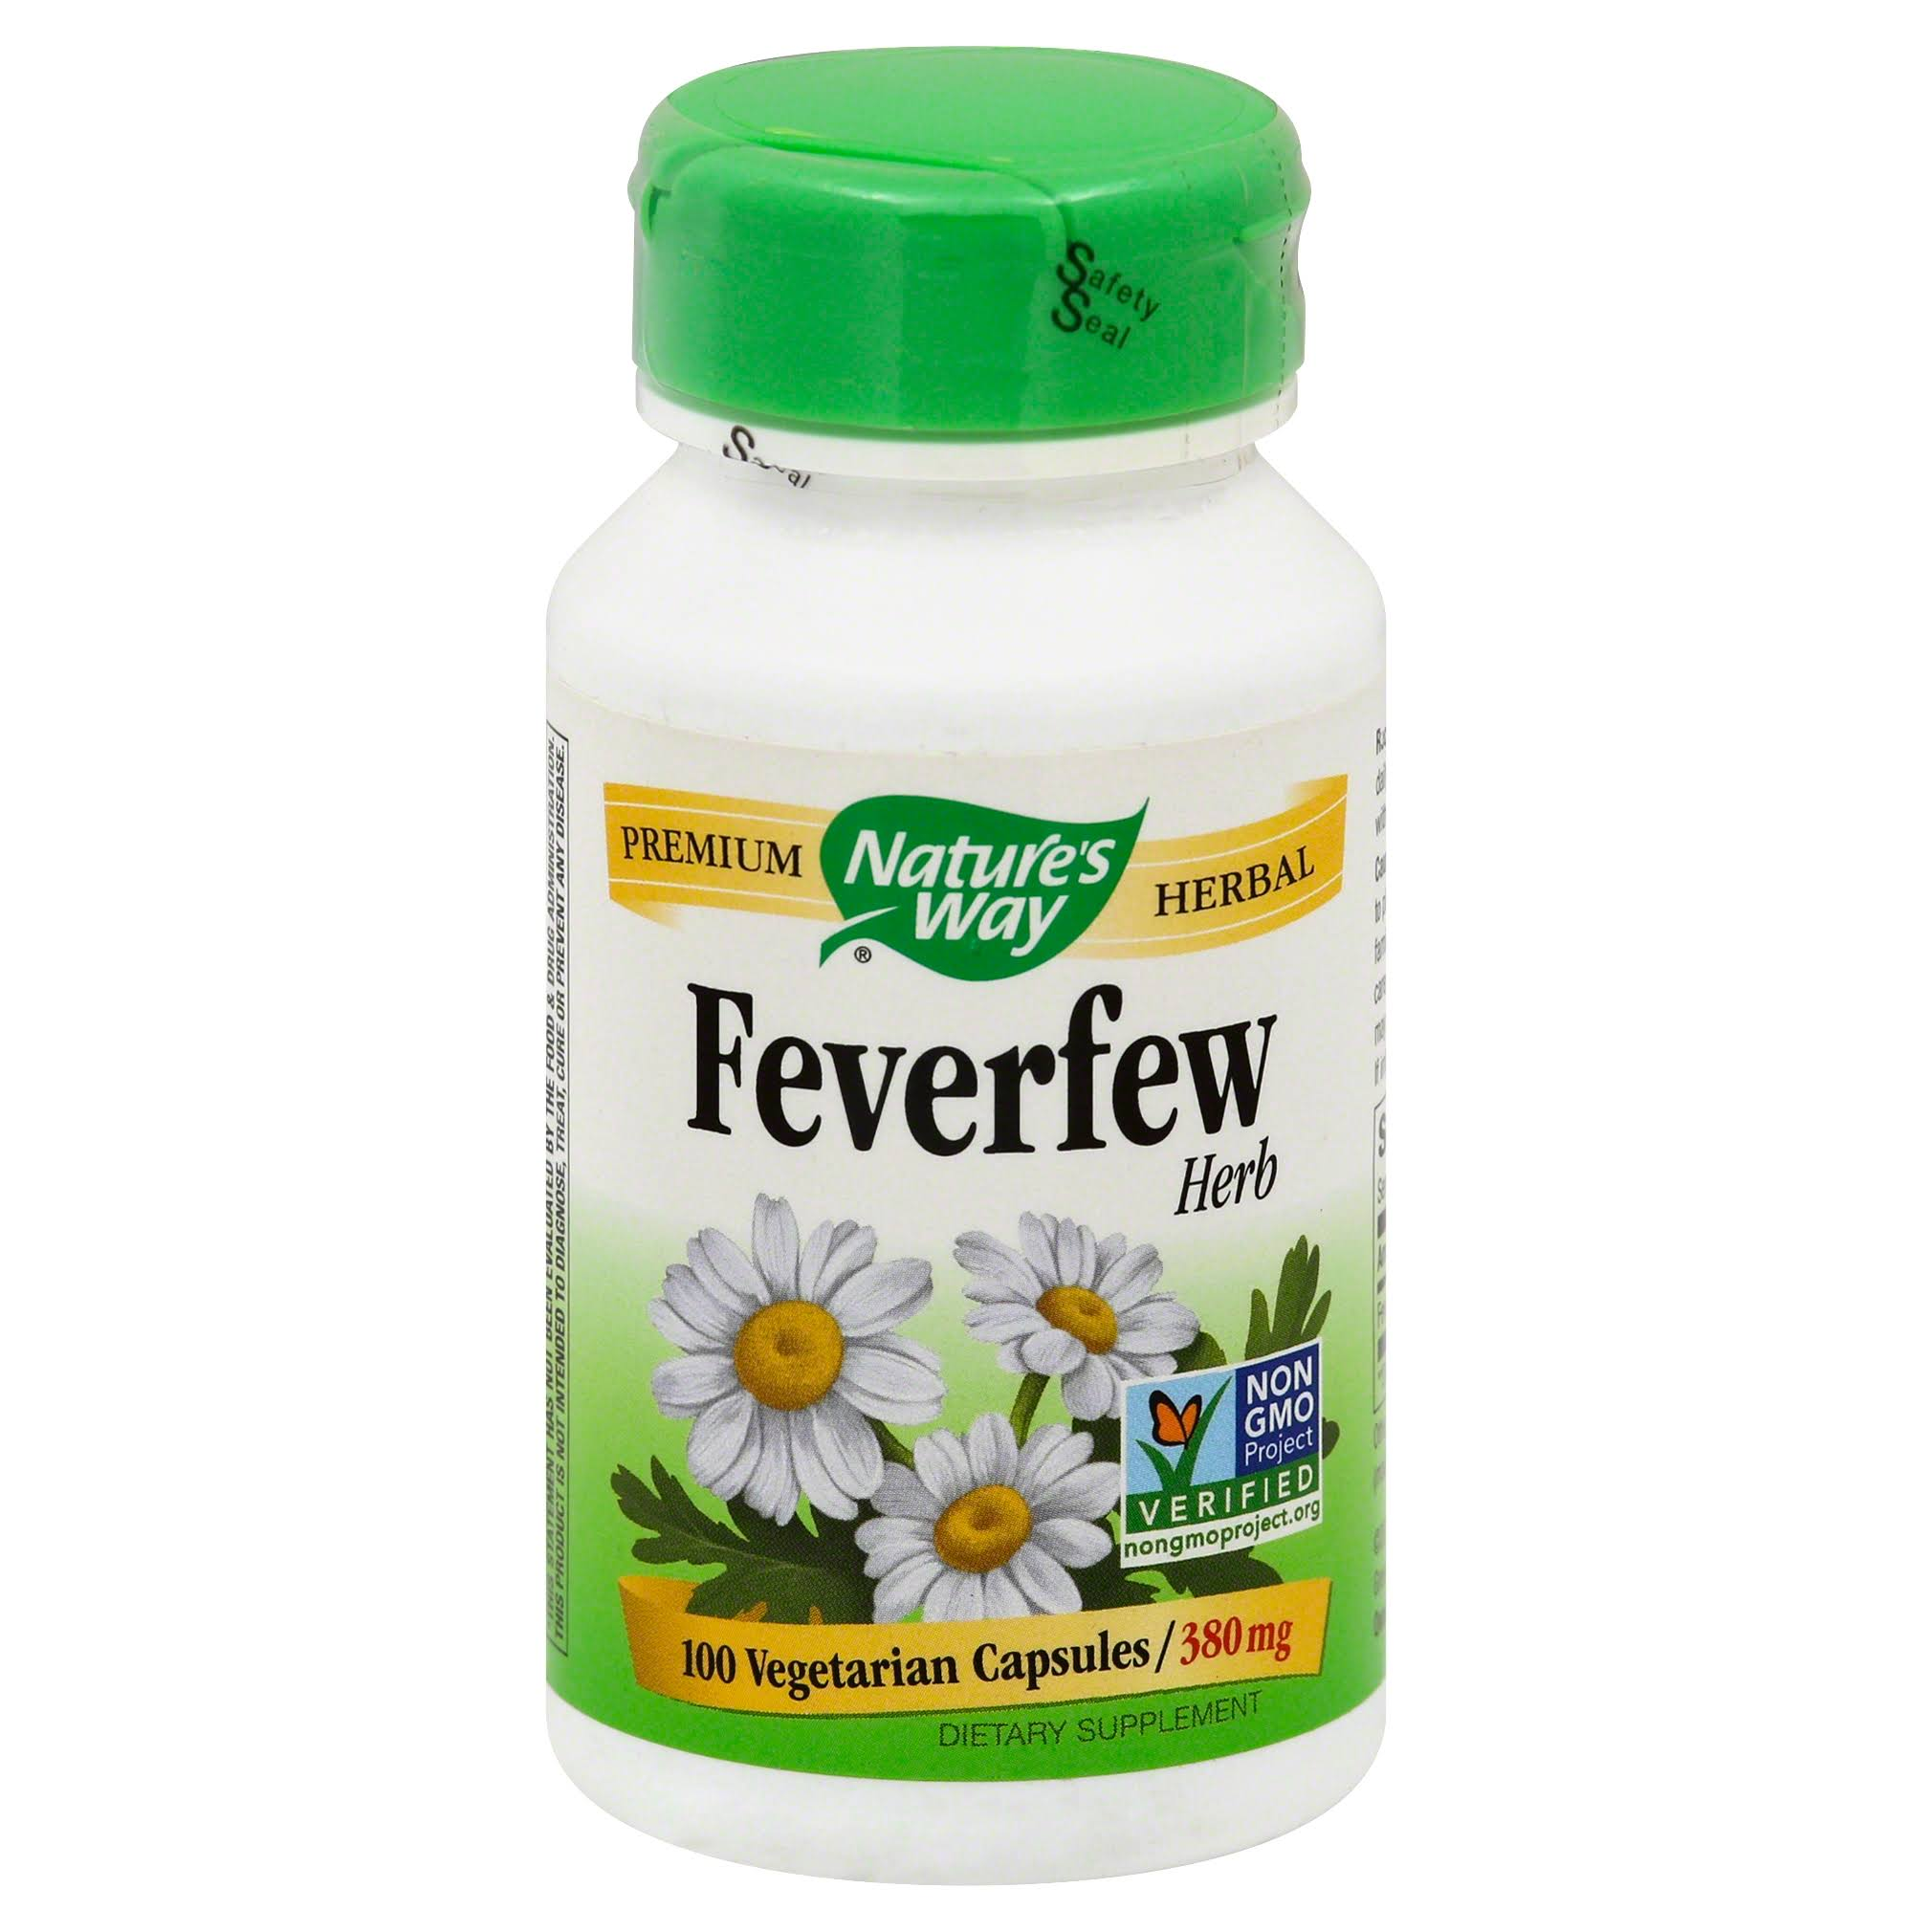 Natures Way Feverfew Leaves - 380mg, x100